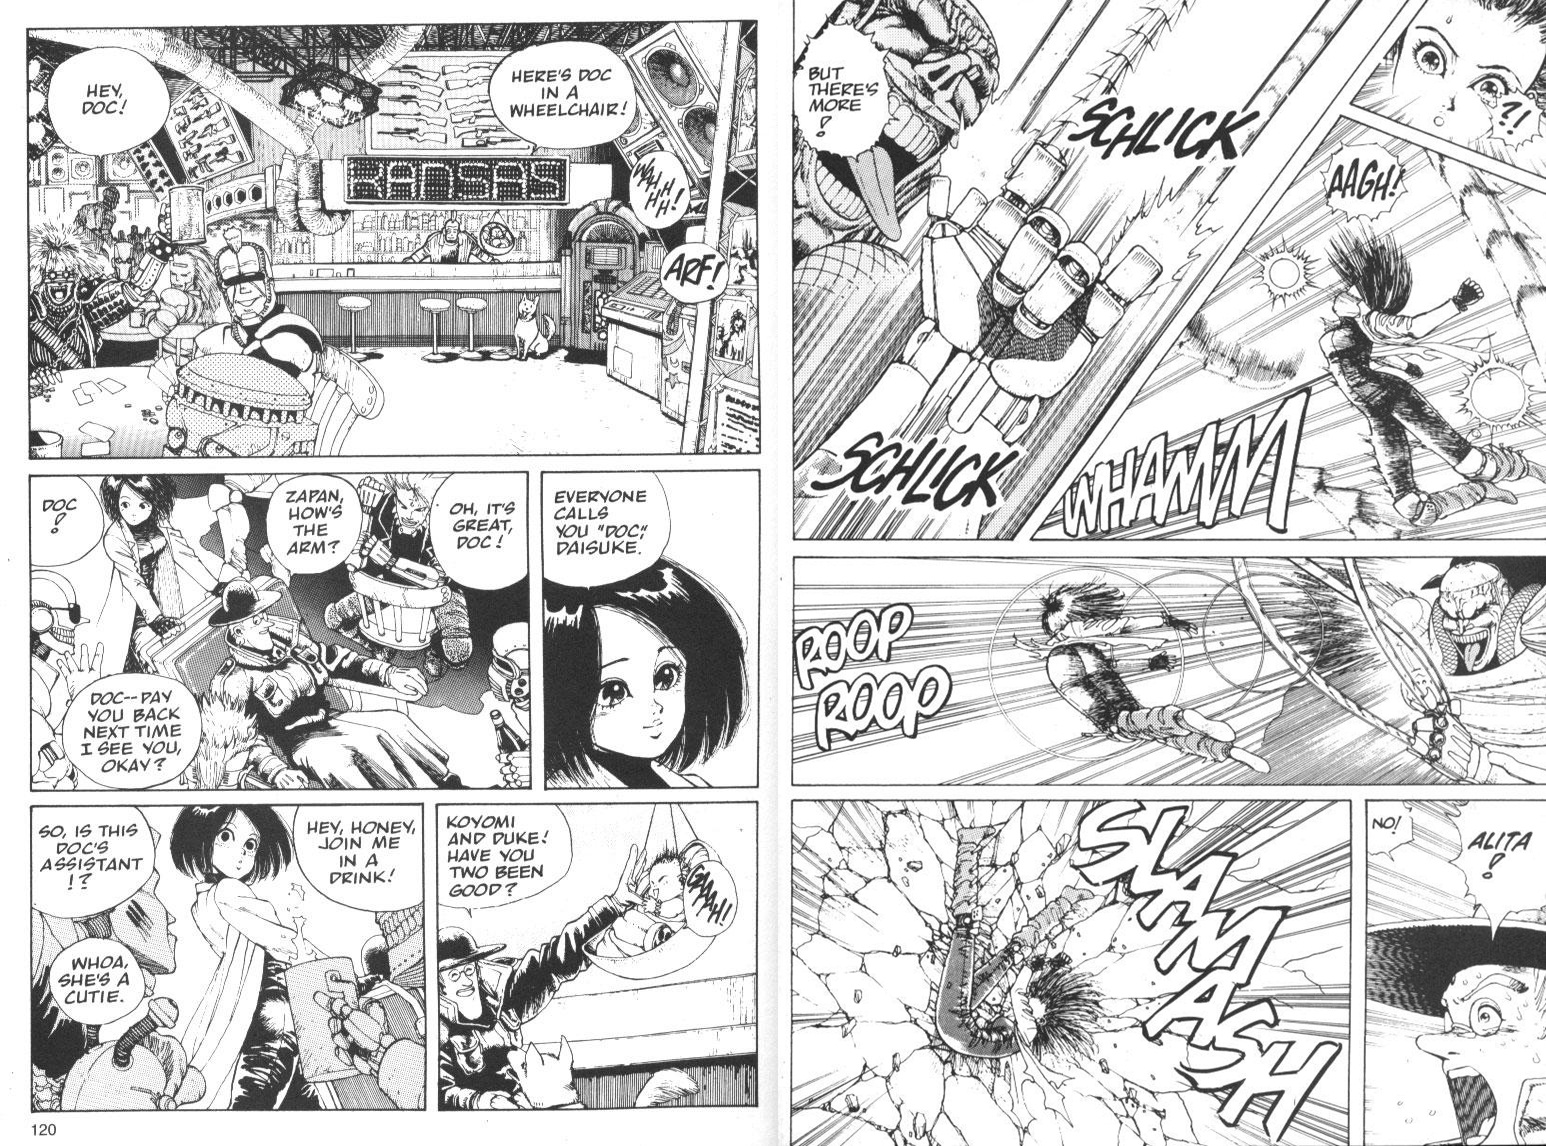 Battle Angel Alita Vol. 1 review